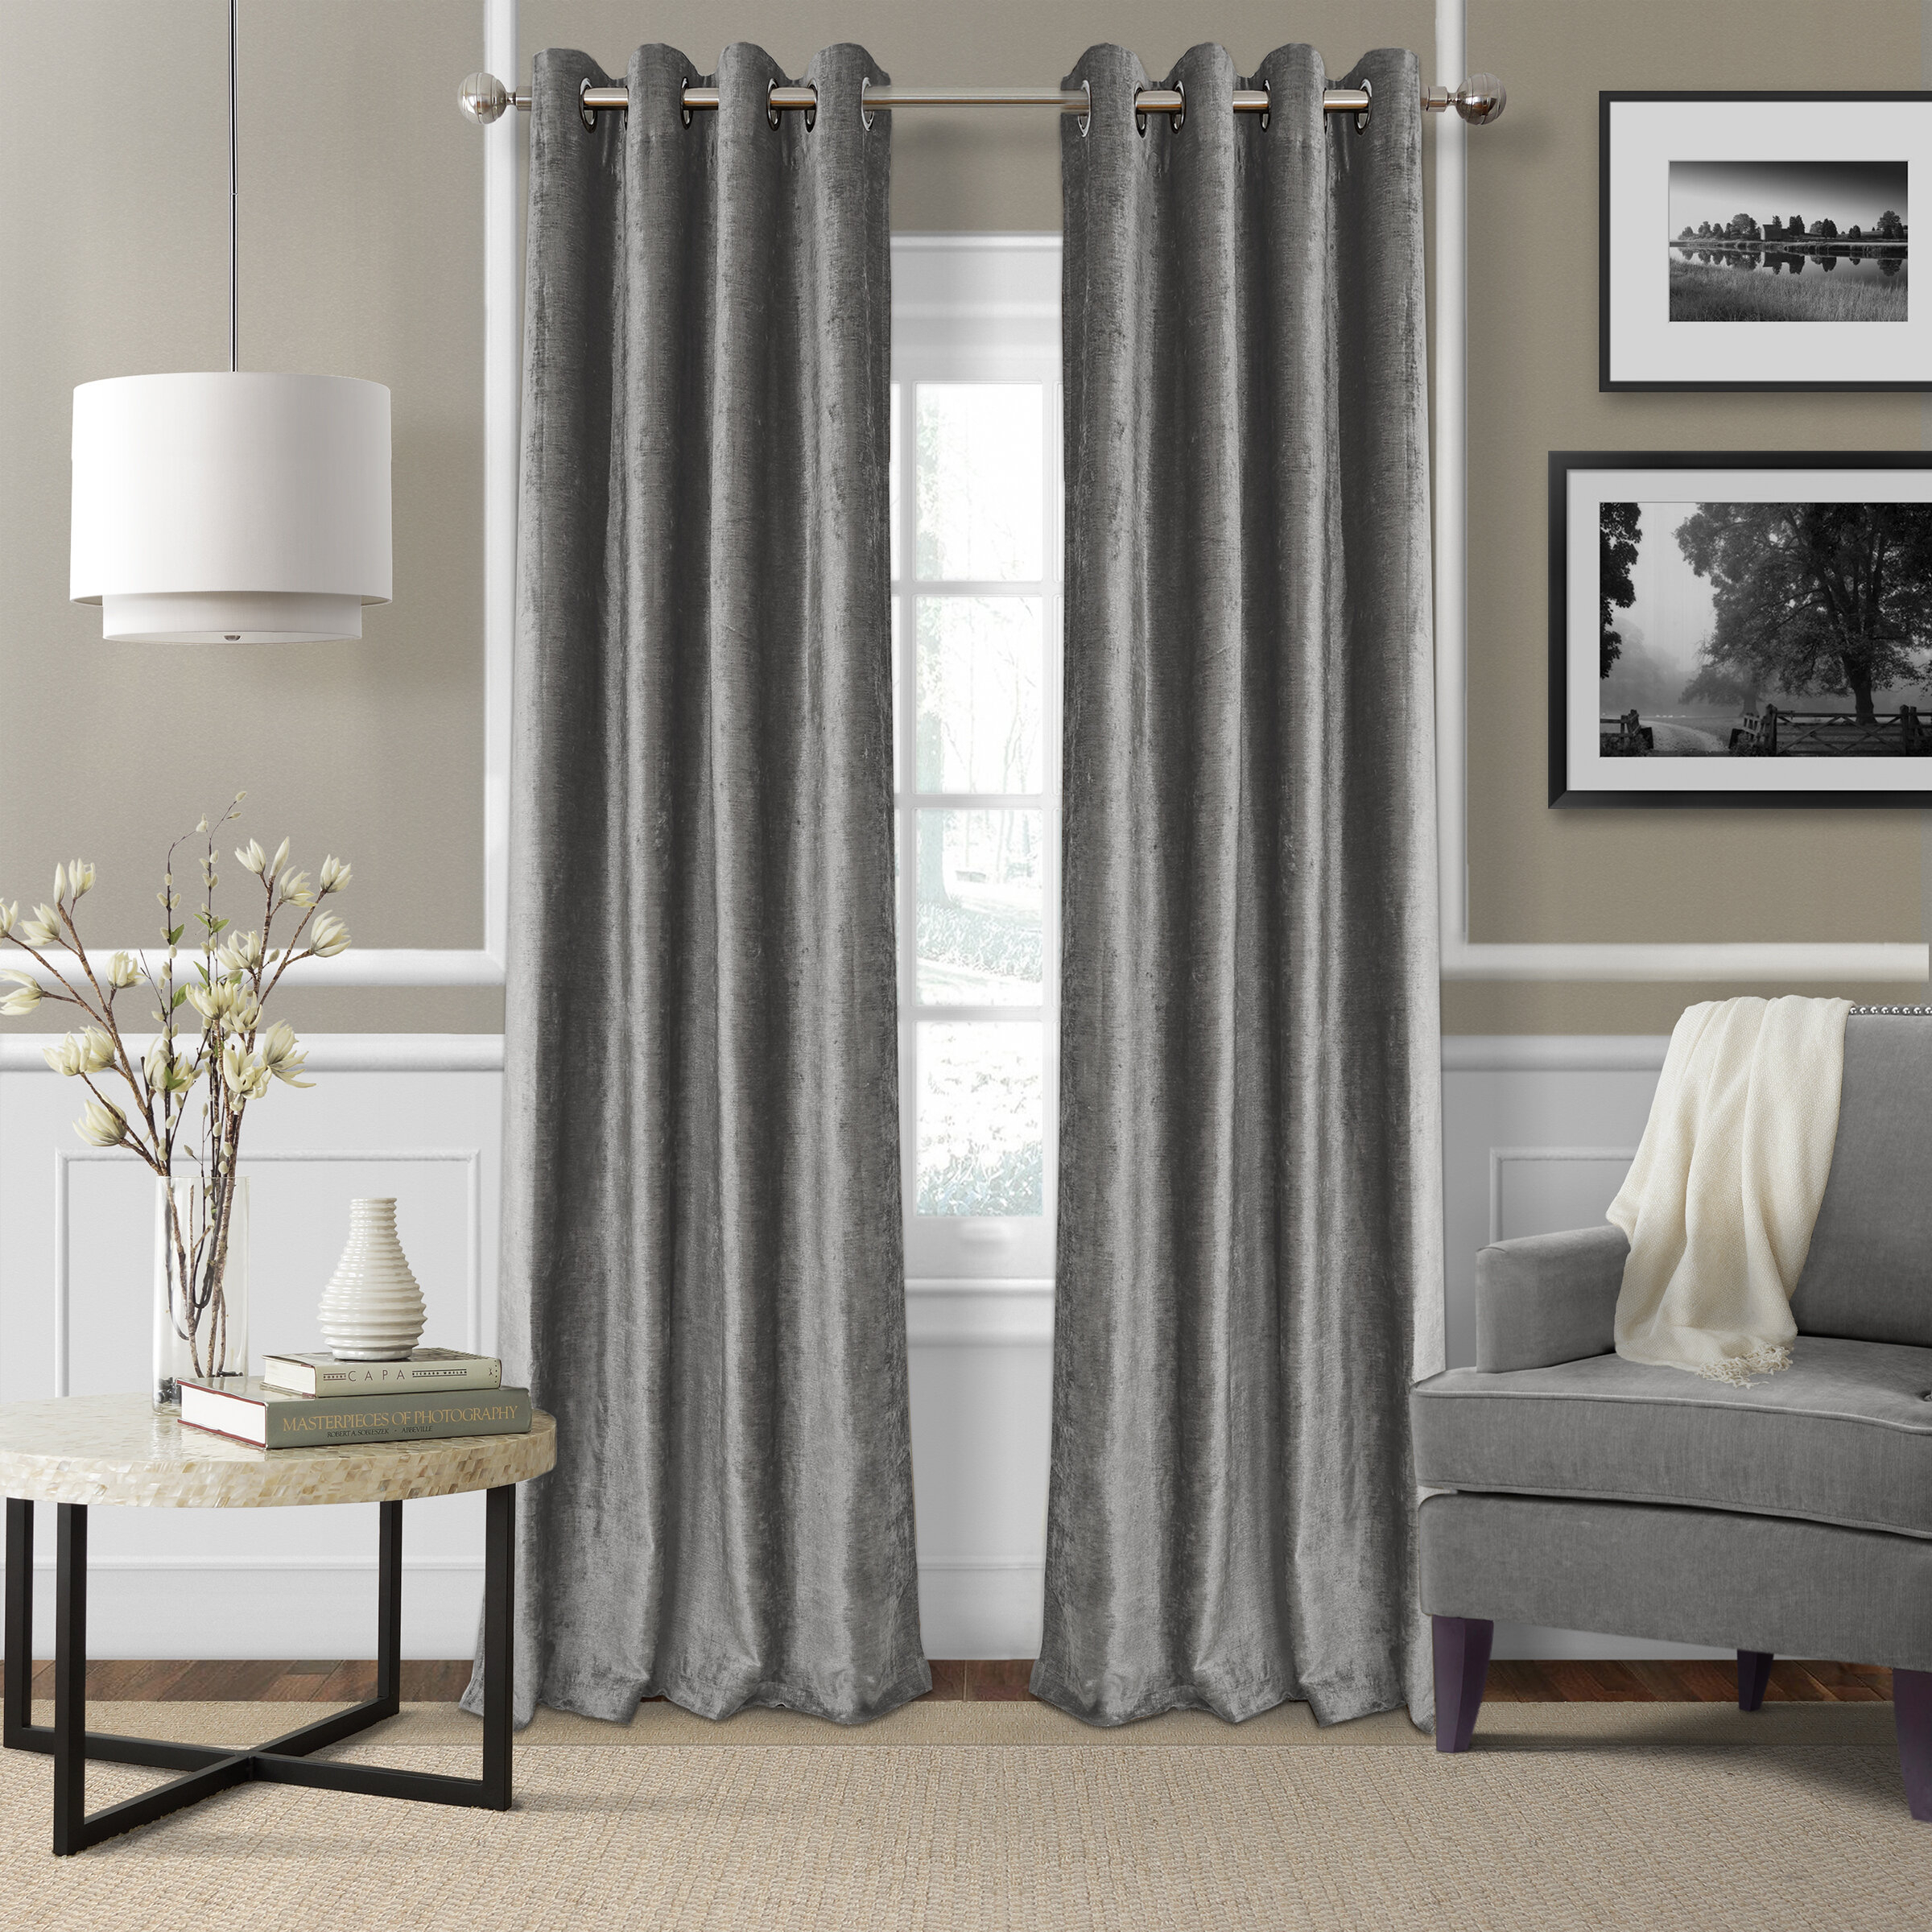 Victoria Velvet Solid Blackout Thermal Grommet Single Curtain Panel Regarding Velvet Solid Room Darkening Window Curtain Panel Sets (View 16 of 30)